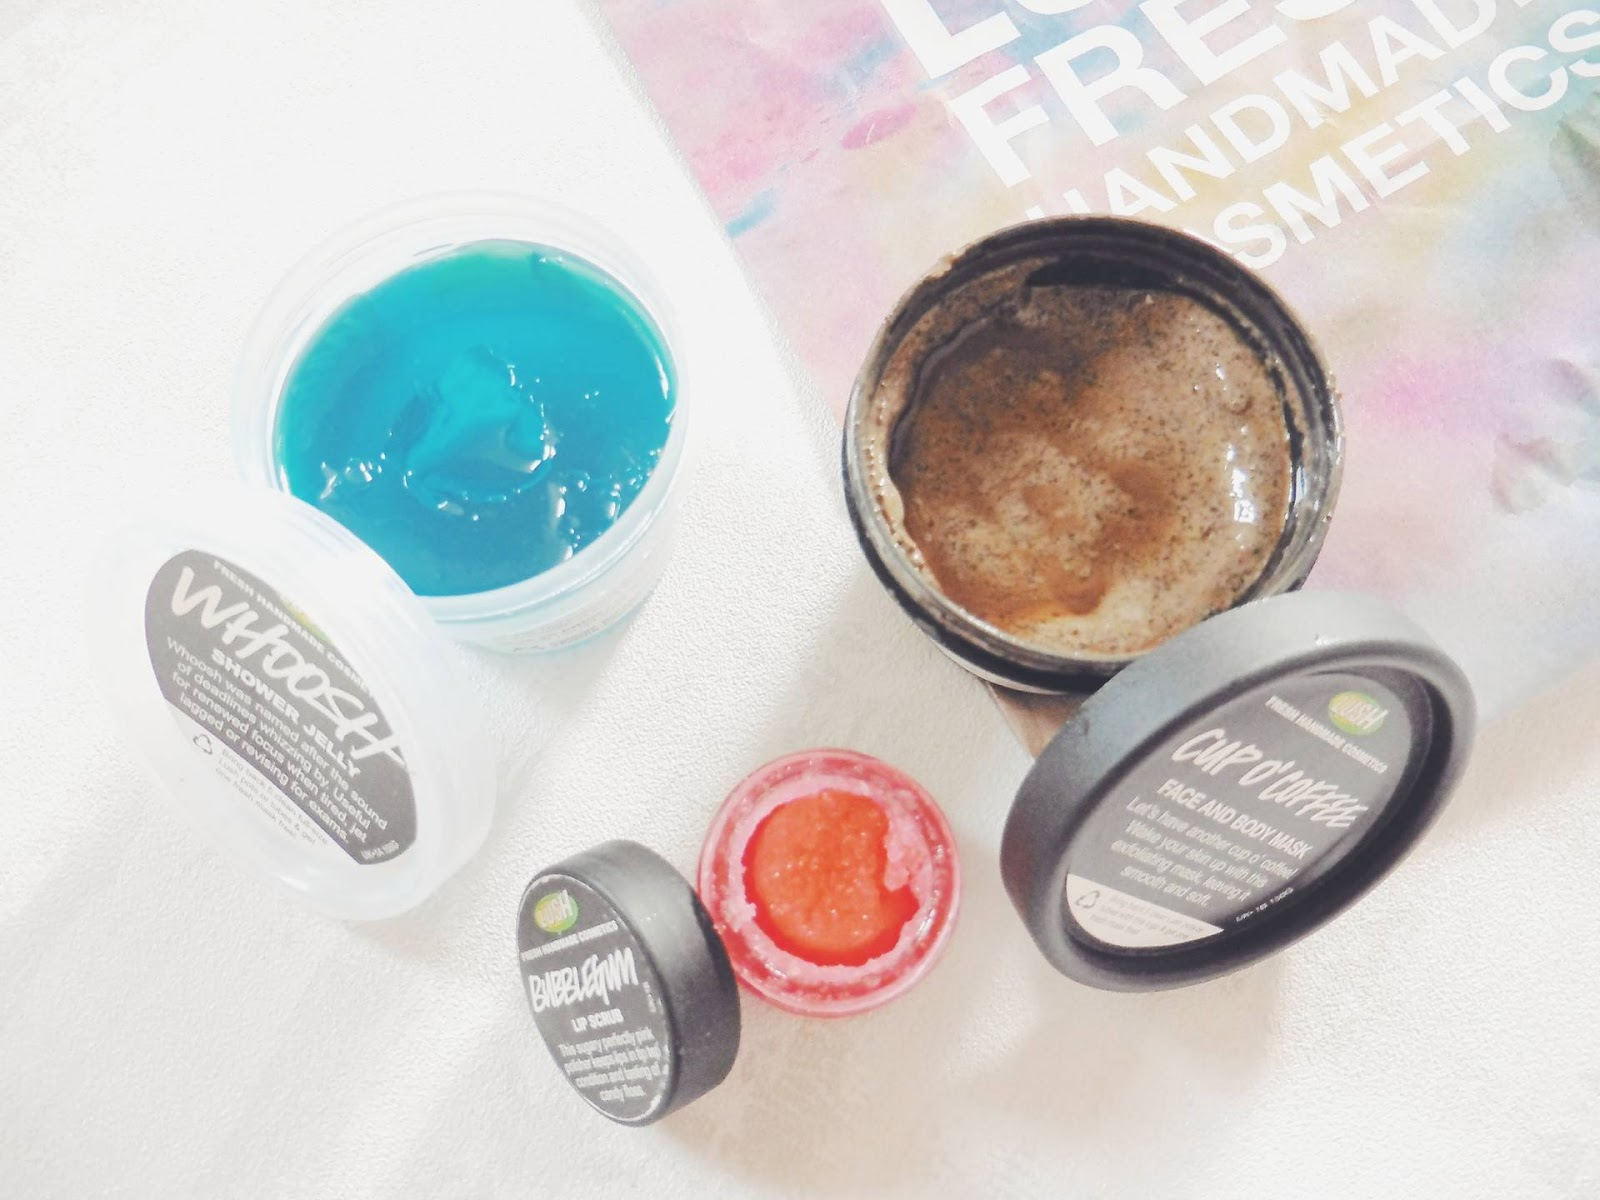 lebellelavie - Lush Products I'm currently using